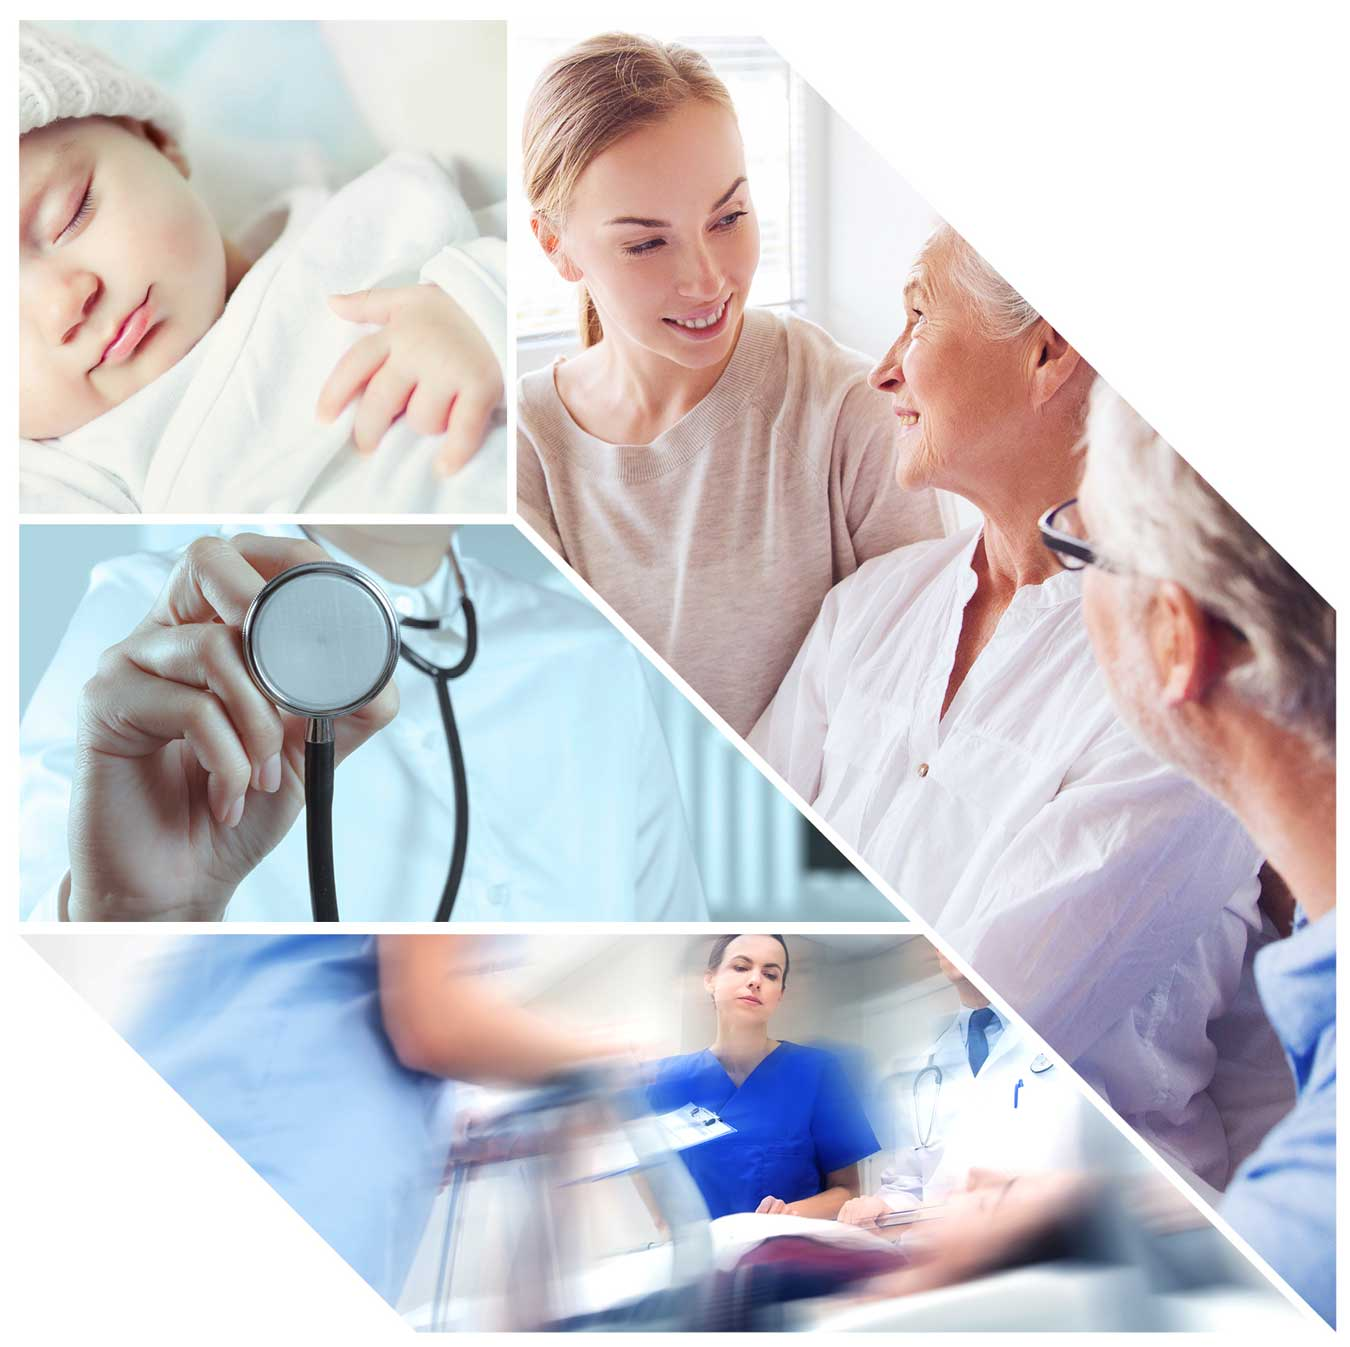 Paragon-Care-Group-Image-Collage_Medtek_v1